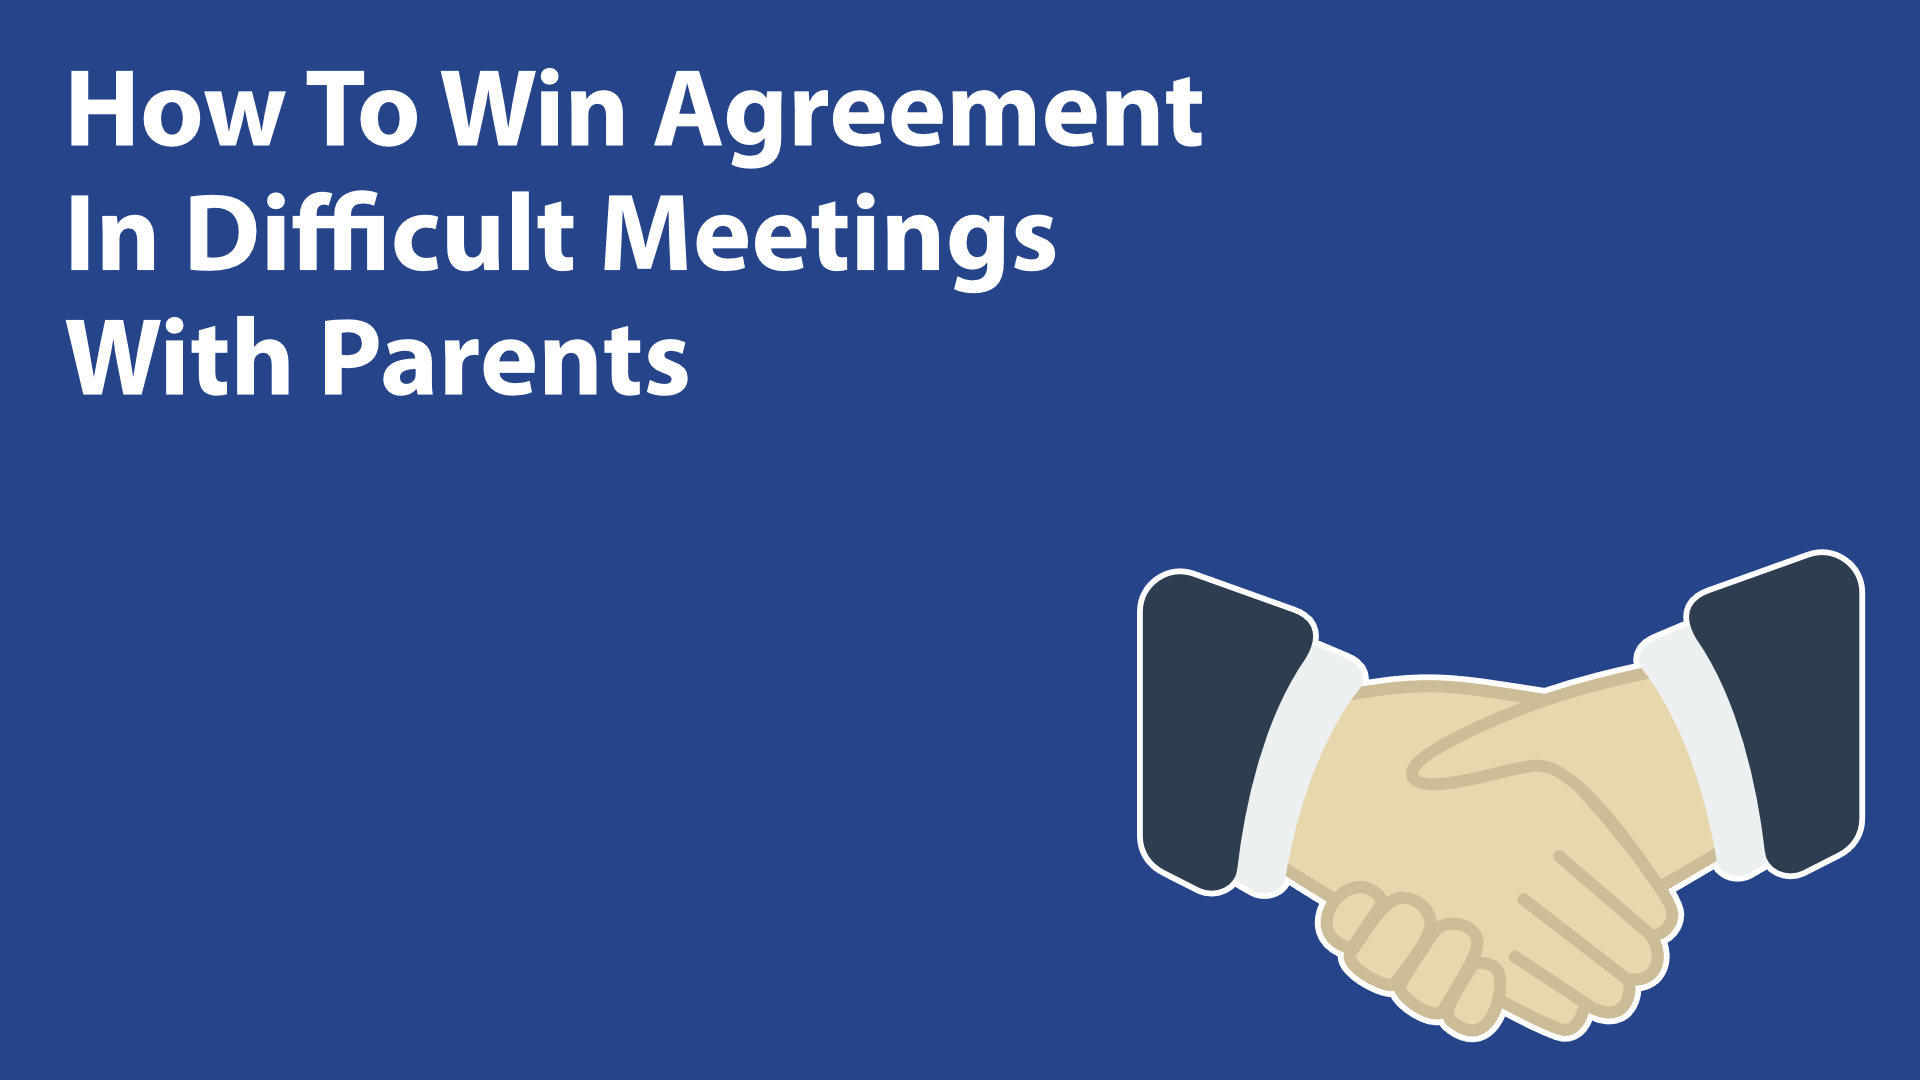 How To Win Agreement In Difficult Meetings With Parents image